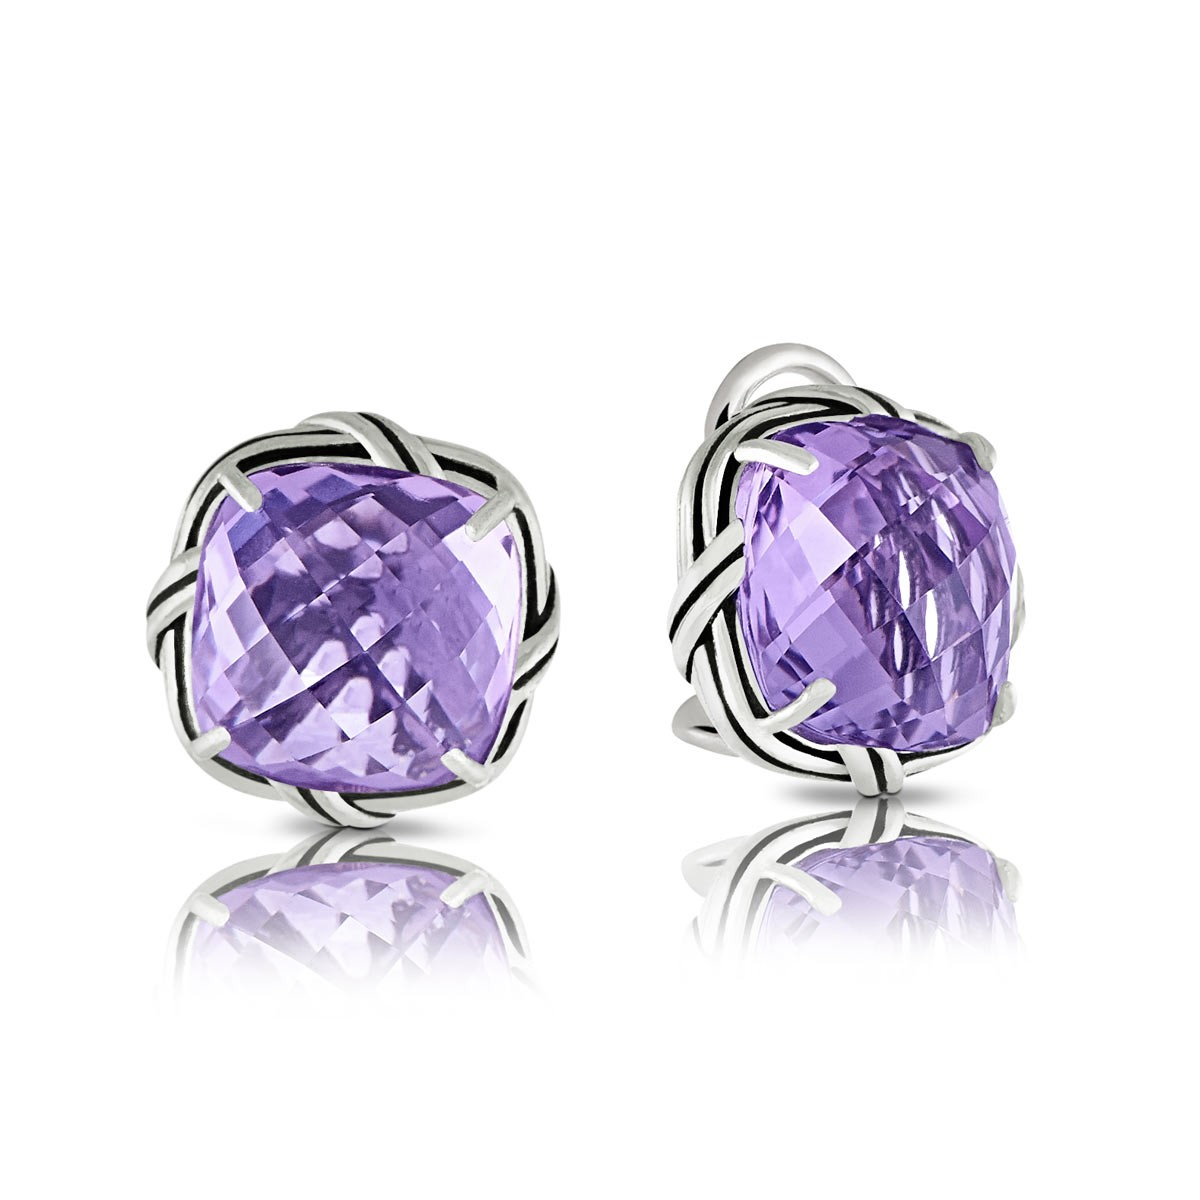 Peter Thomas Roth Ribbon And Reed Lavender Amethyst Clip Earrings In Sterling Silver